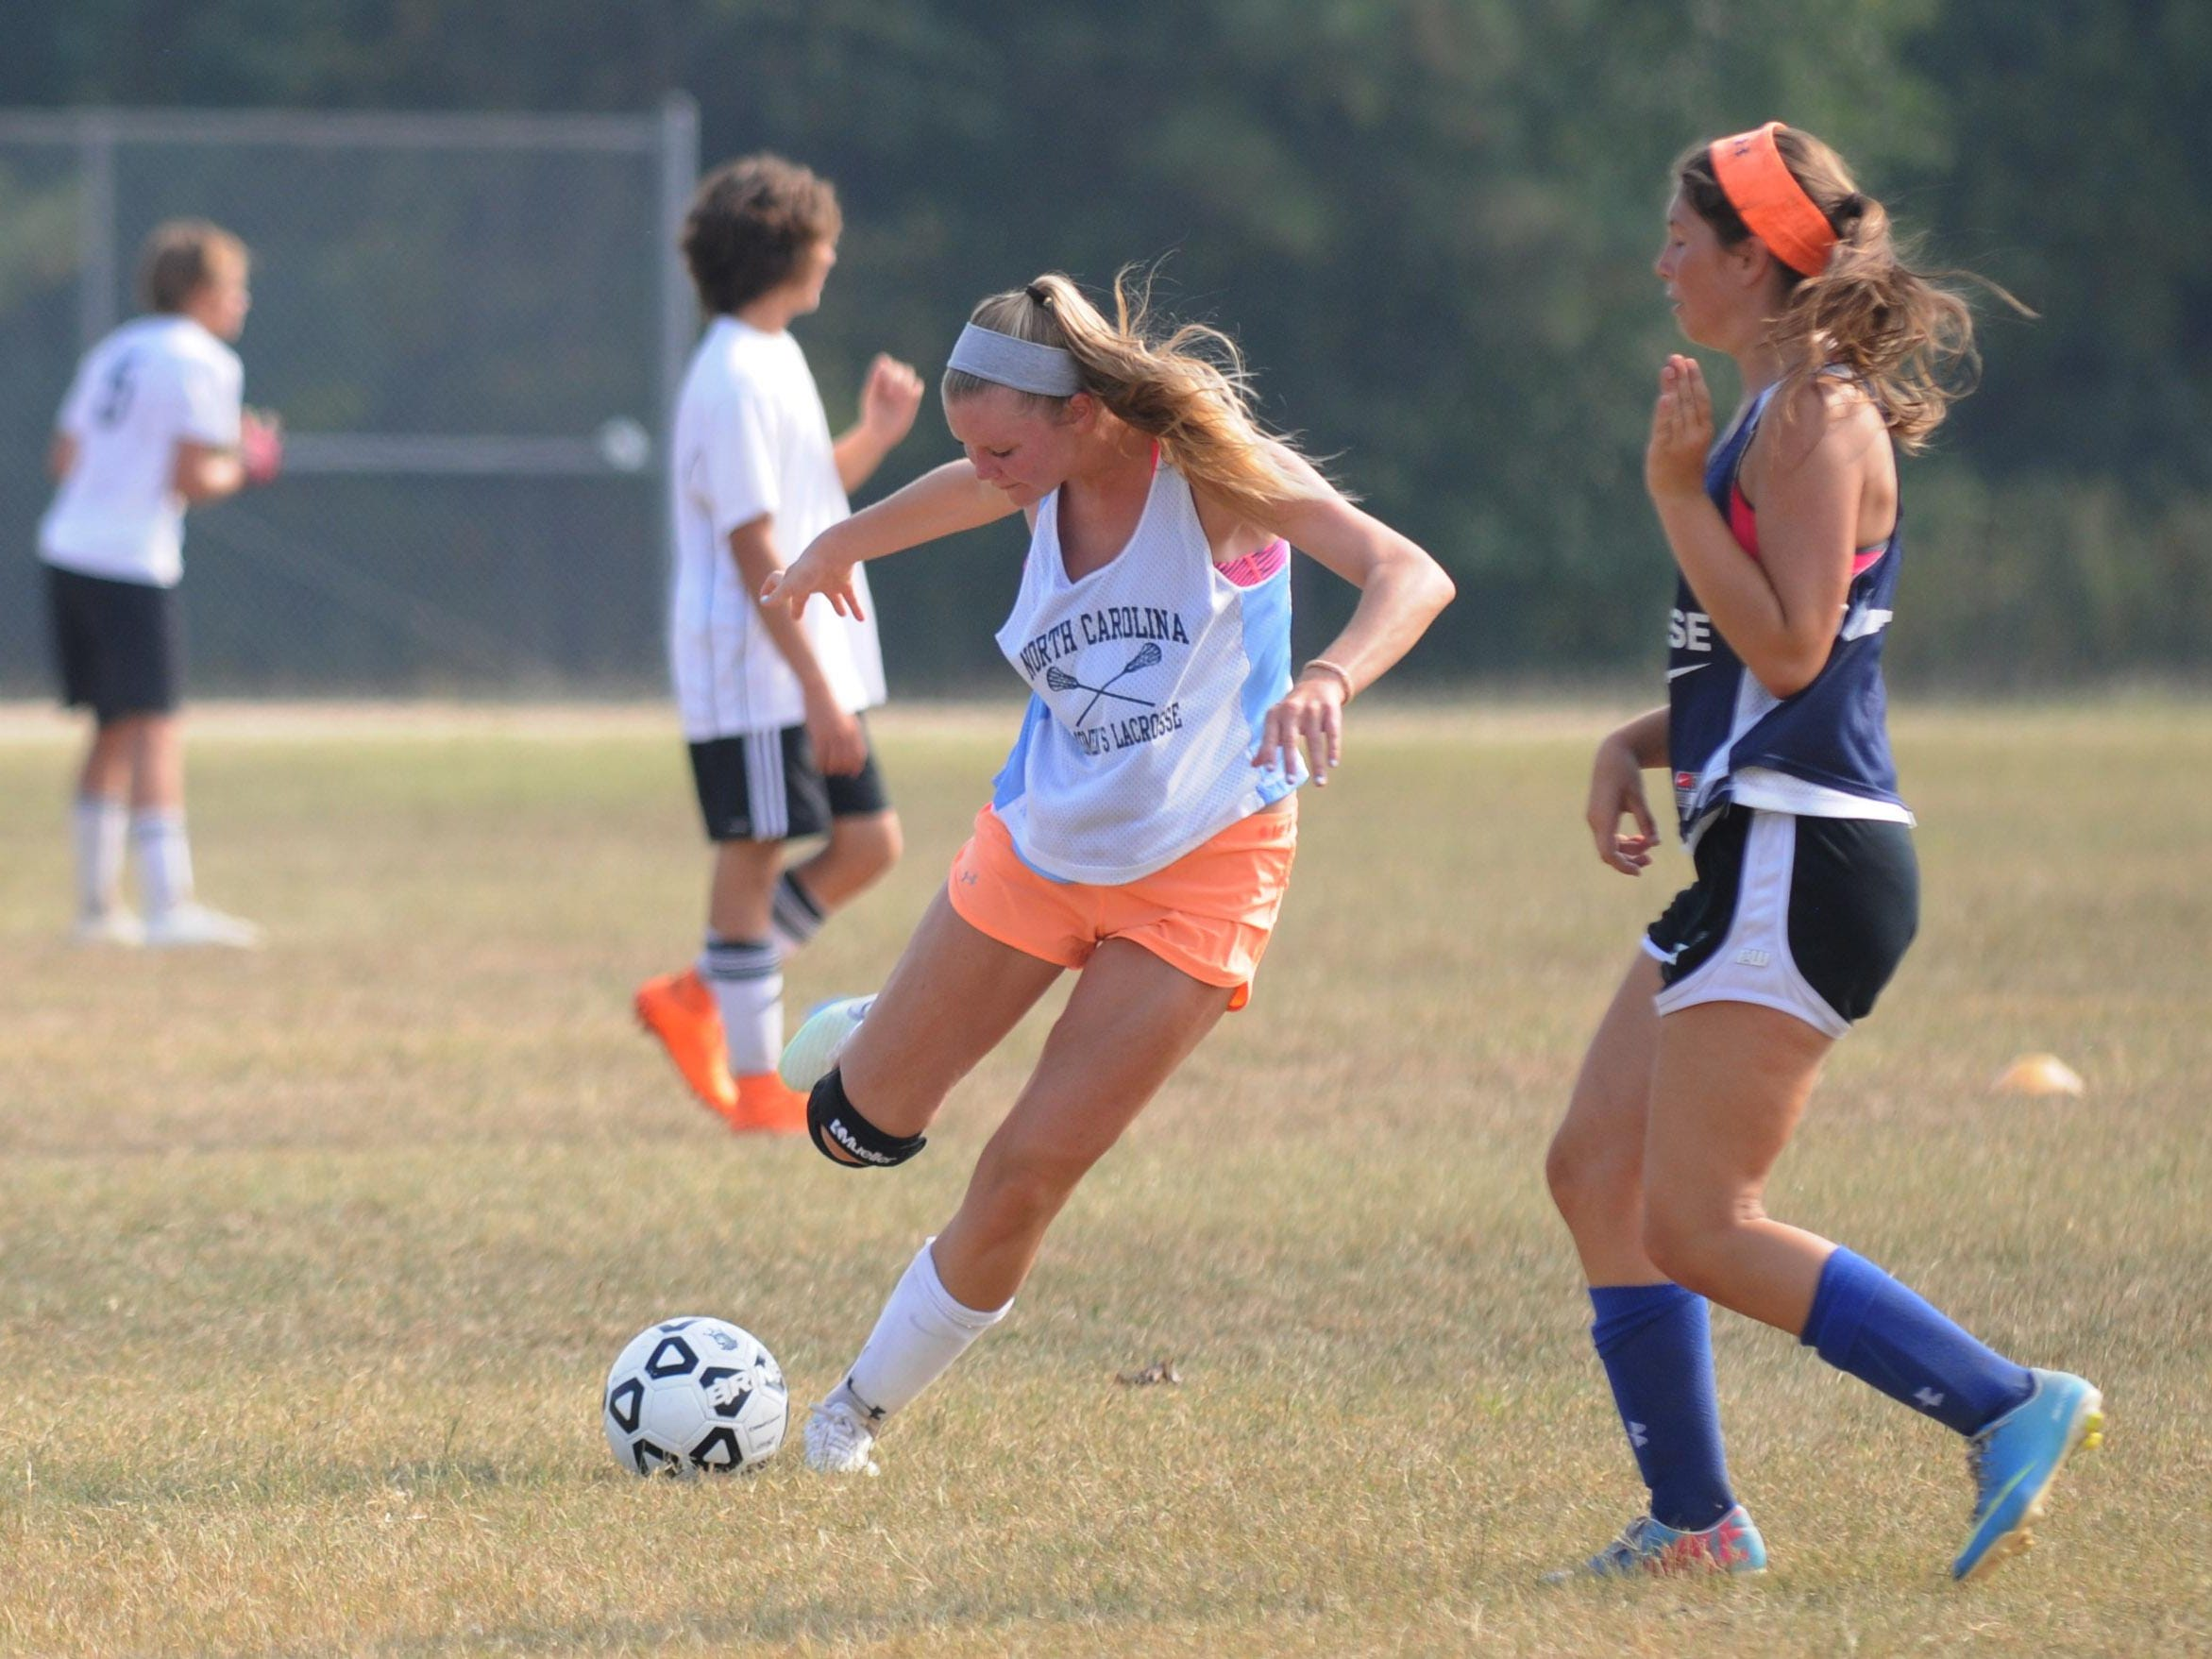 Stephen Decatur's Lexie VanKirk crosses a ball during practice. VanKirk will be an offensive threat this season.